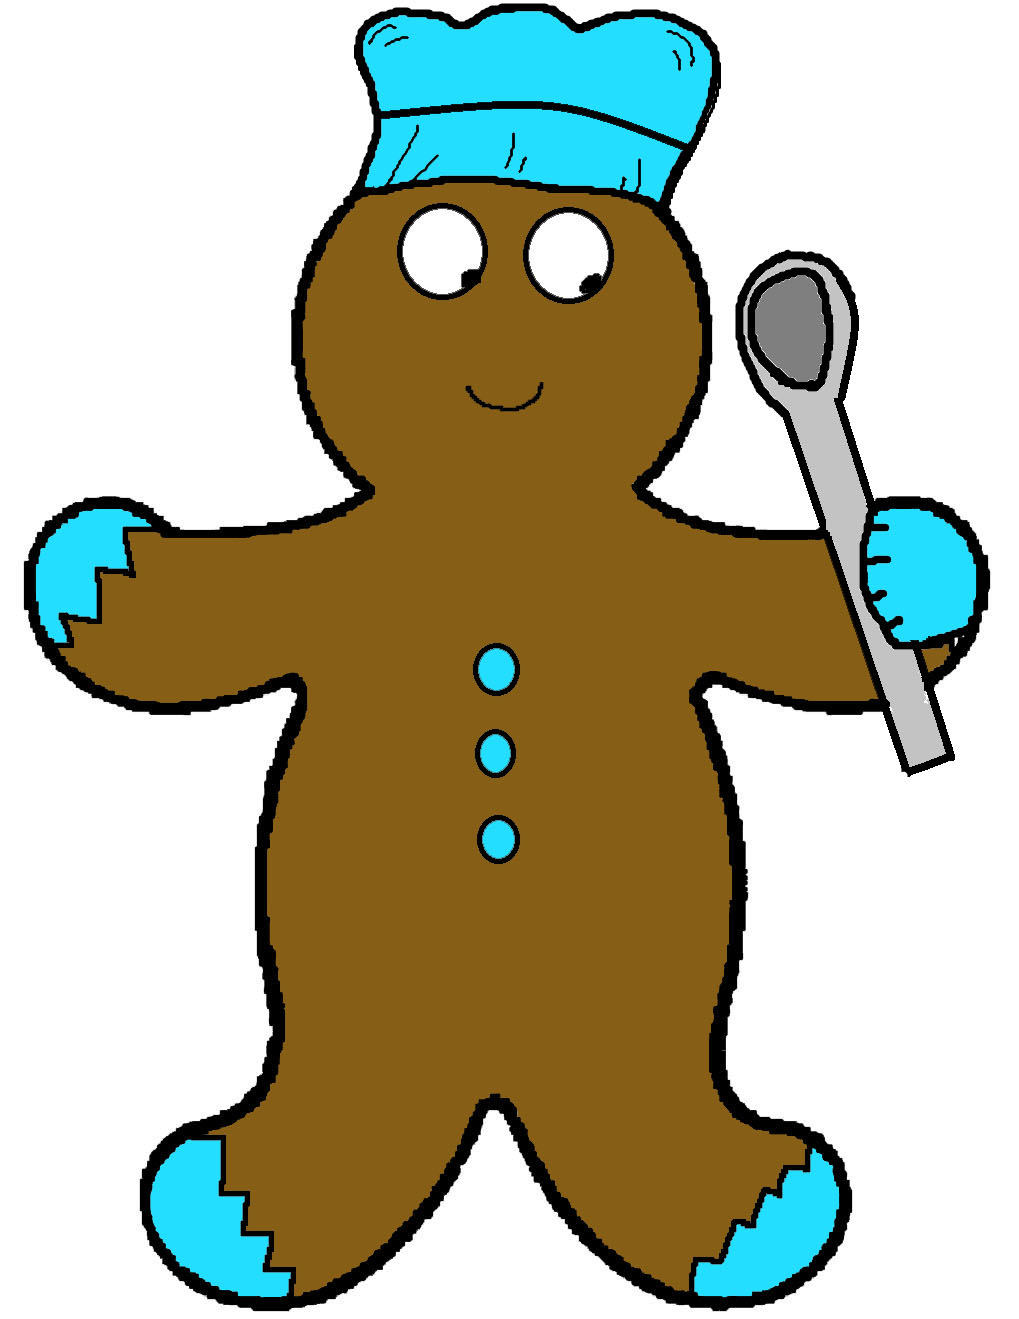 Free Christmas Gingerbread Crafts and Ornaments Such as Cutouts For Kids in Sunday school class by Church House Collection